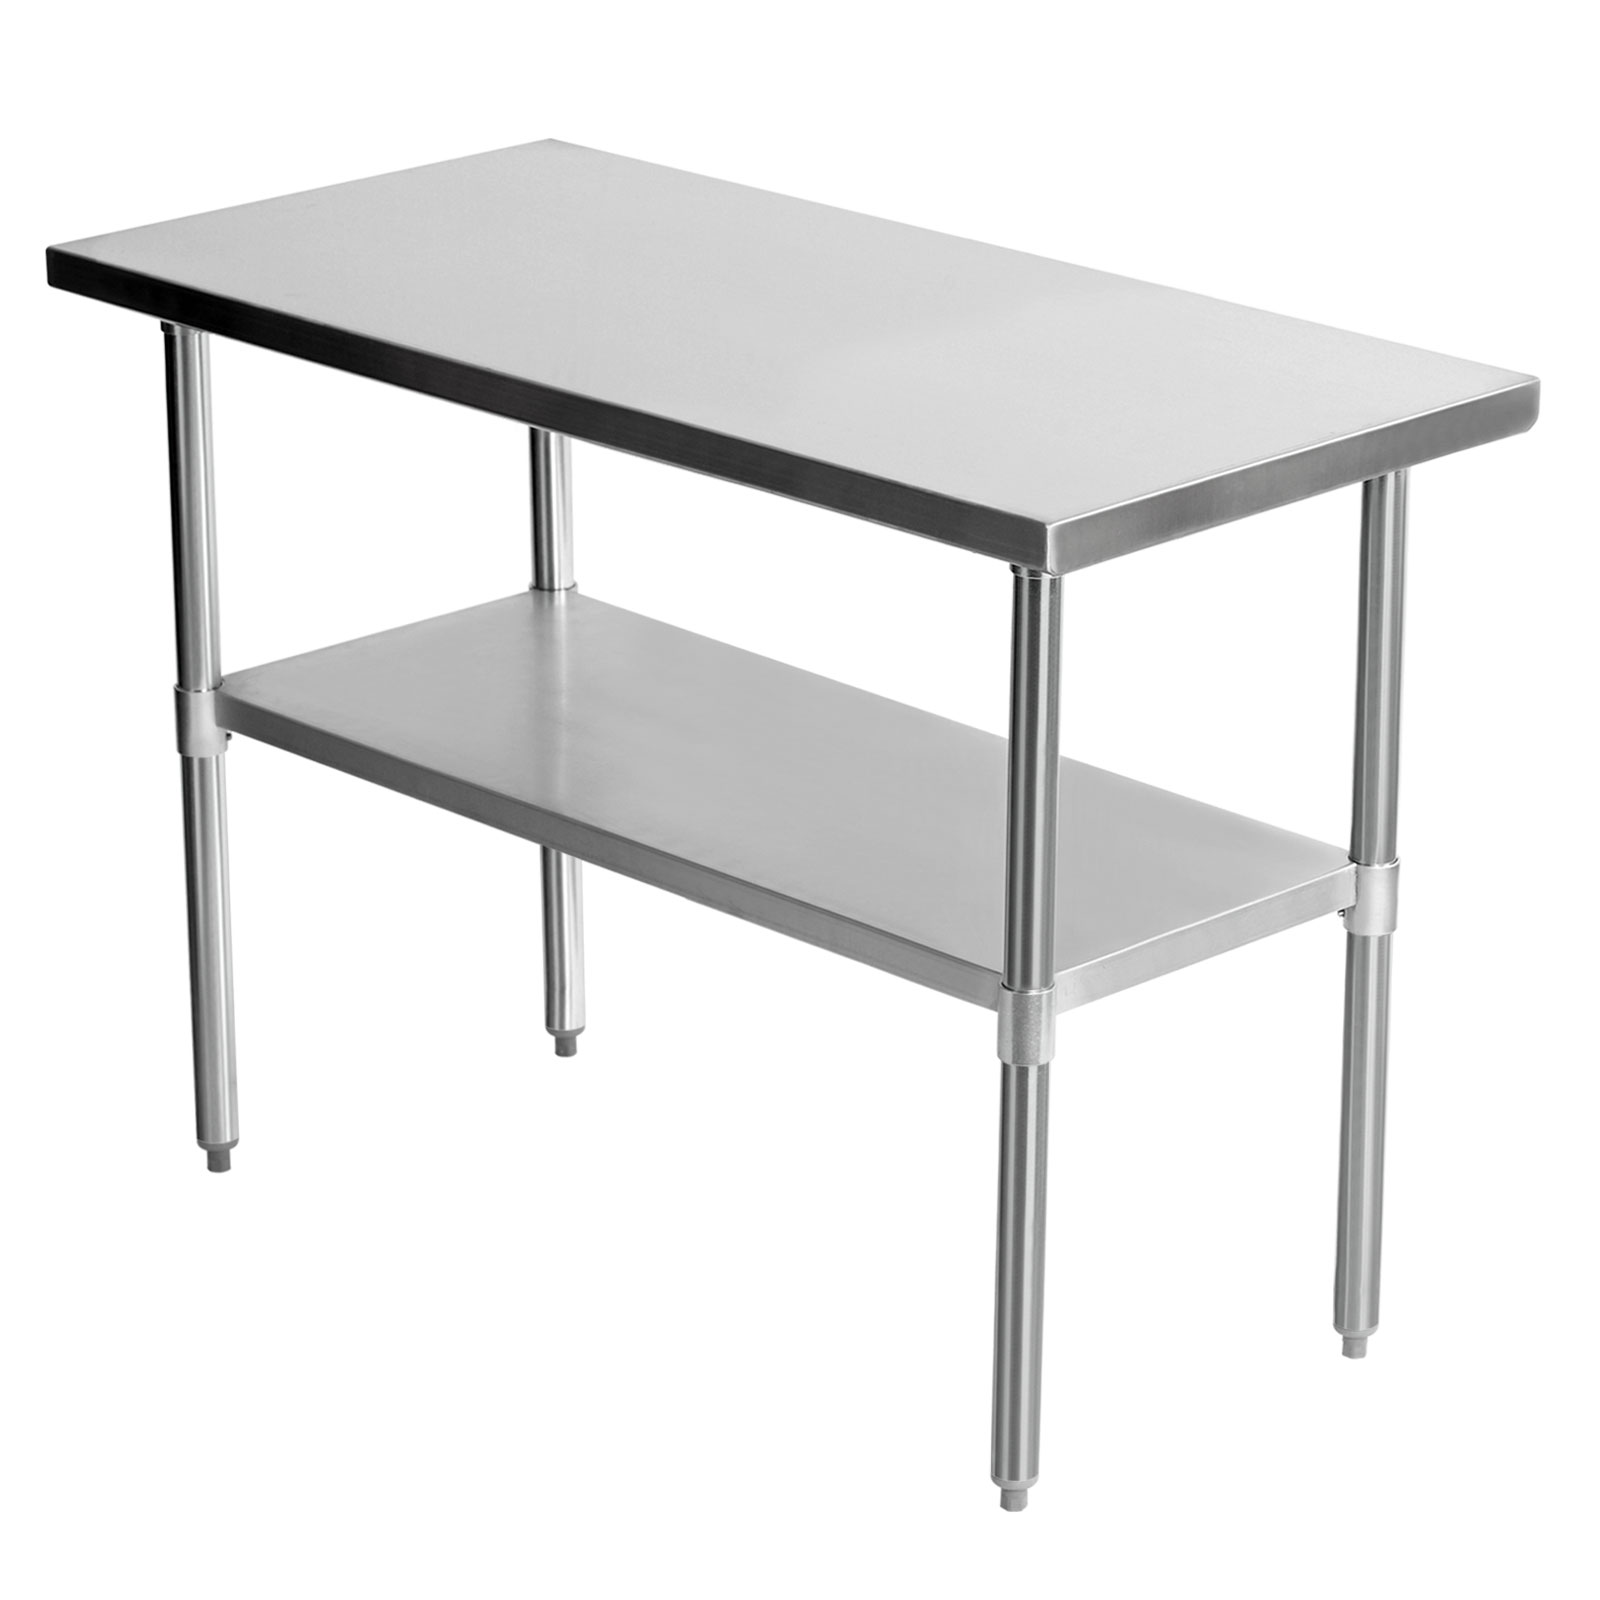 1220x610mm Stainless Steel Work Bench Catering Table ...